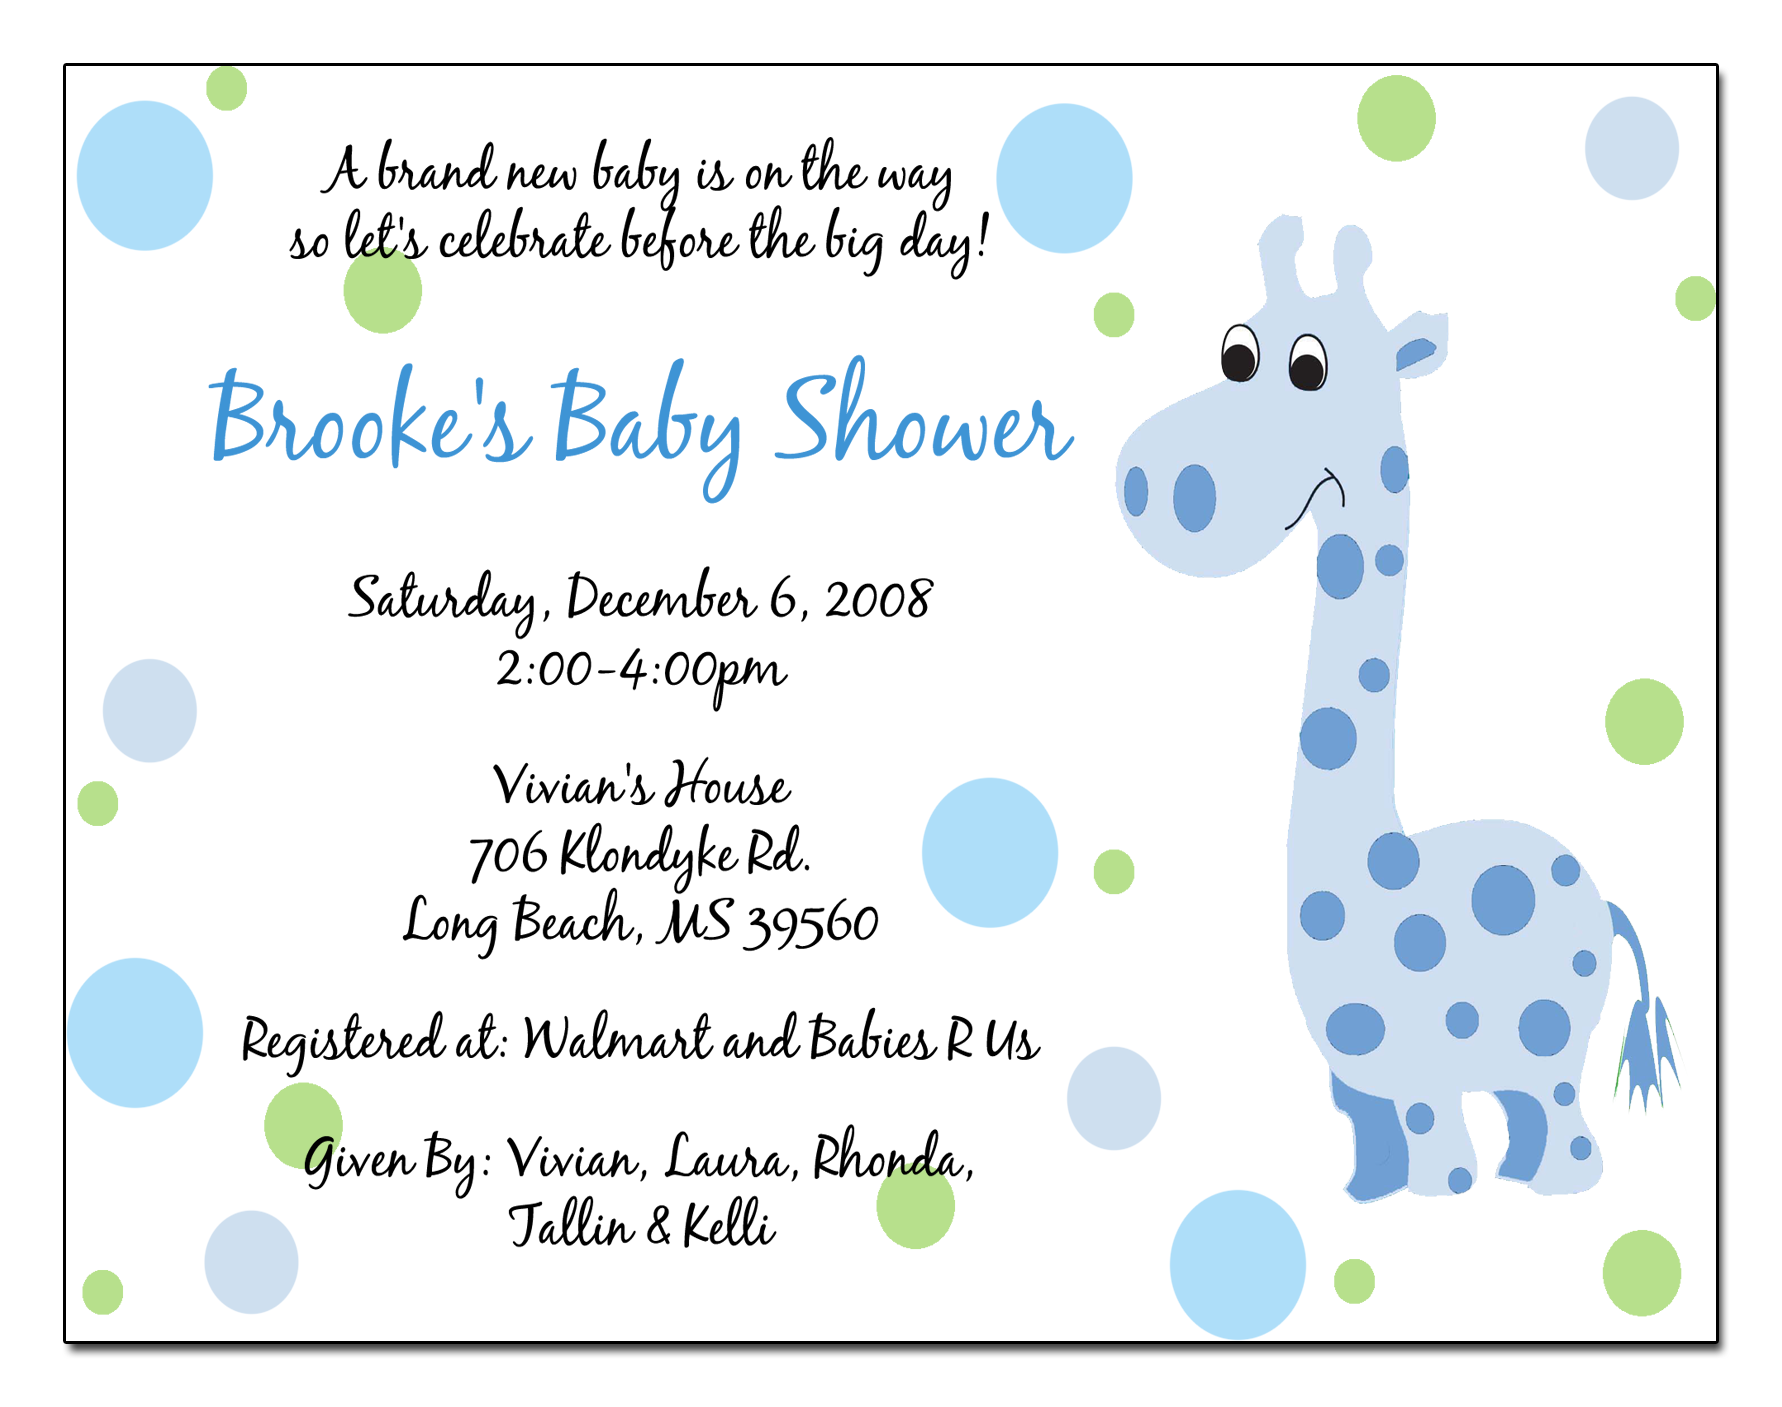 Get Free Template When To Send Out Baby Shower Invitation Simple Baby Shower Invitations Baby Shower Invitation Wording Baby Shower Invitations For Boys